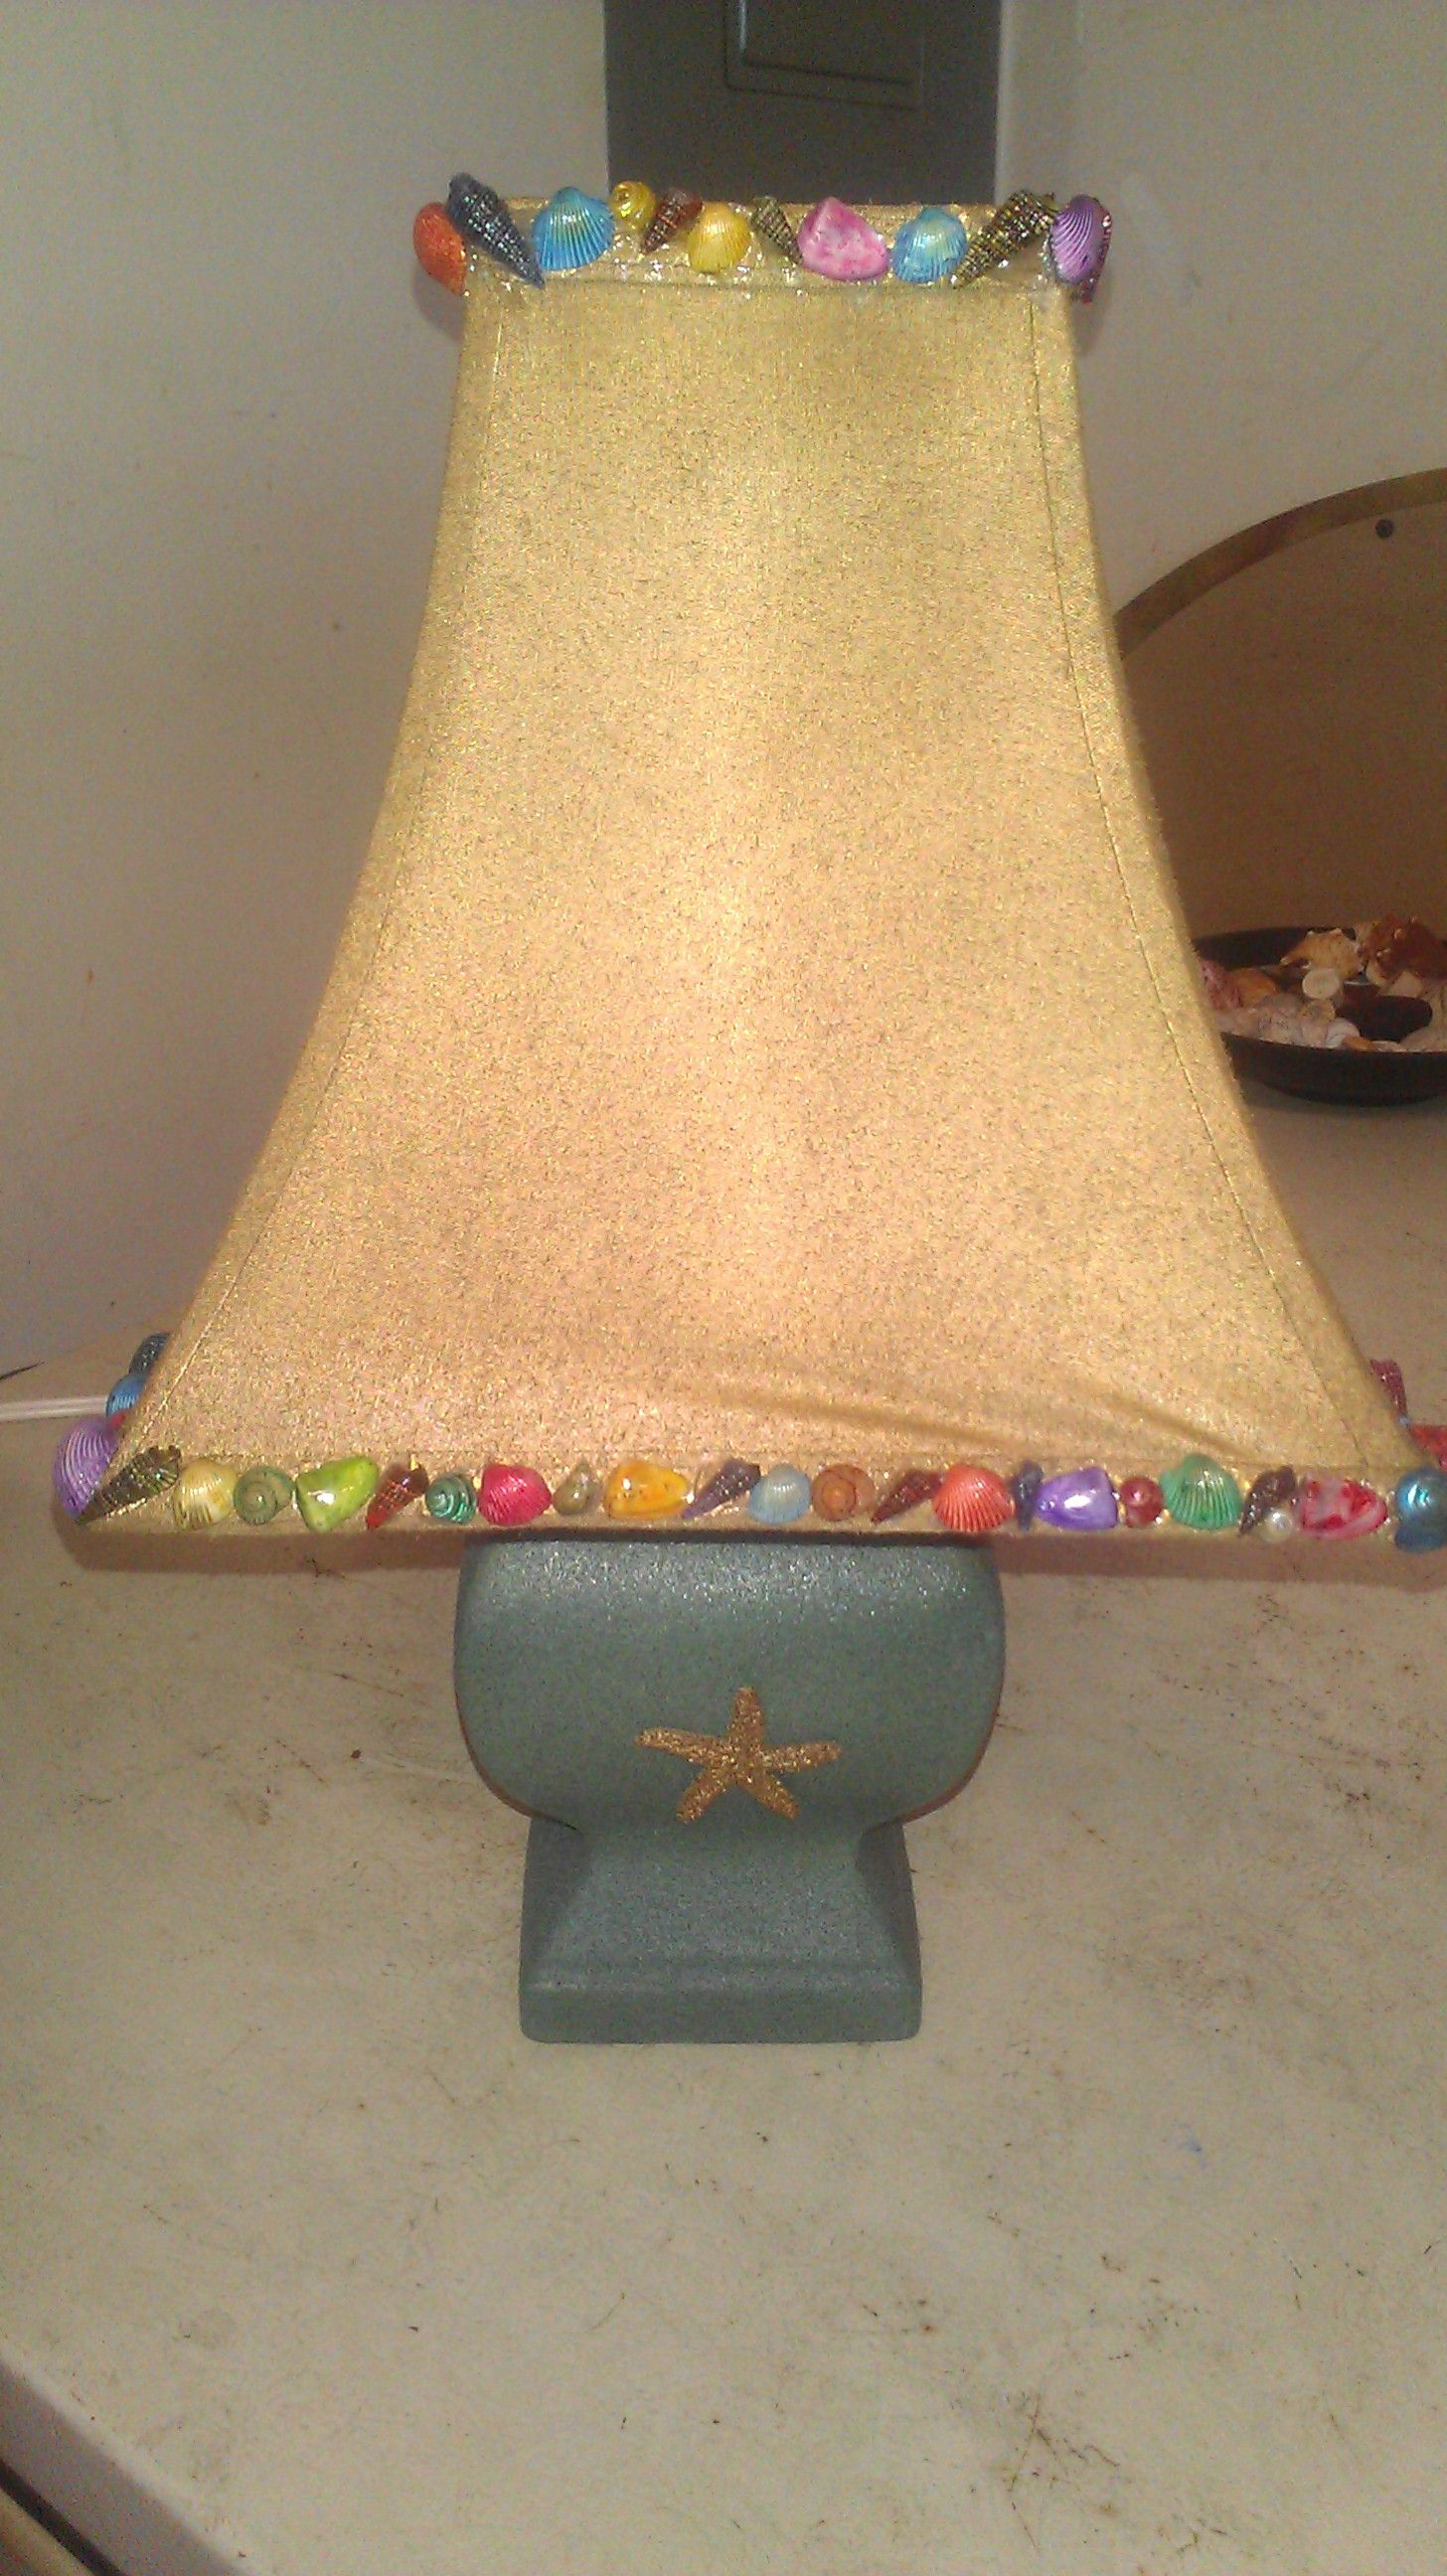 This is a lamp I decorated for my daughter's beach themed